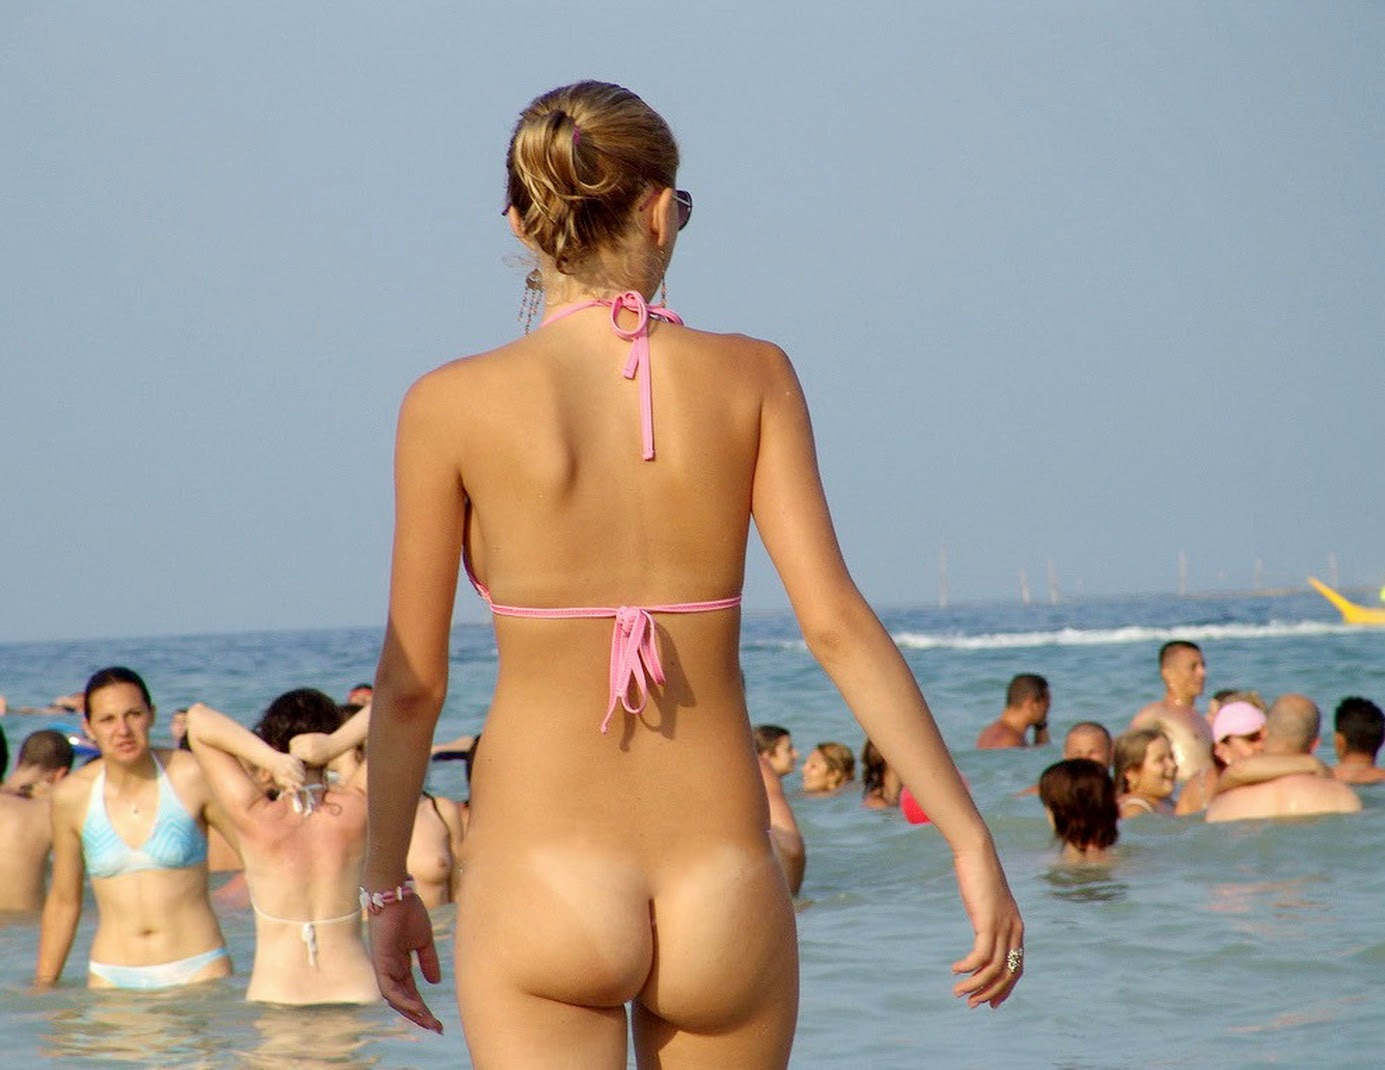 Group bottomless nude beach girls